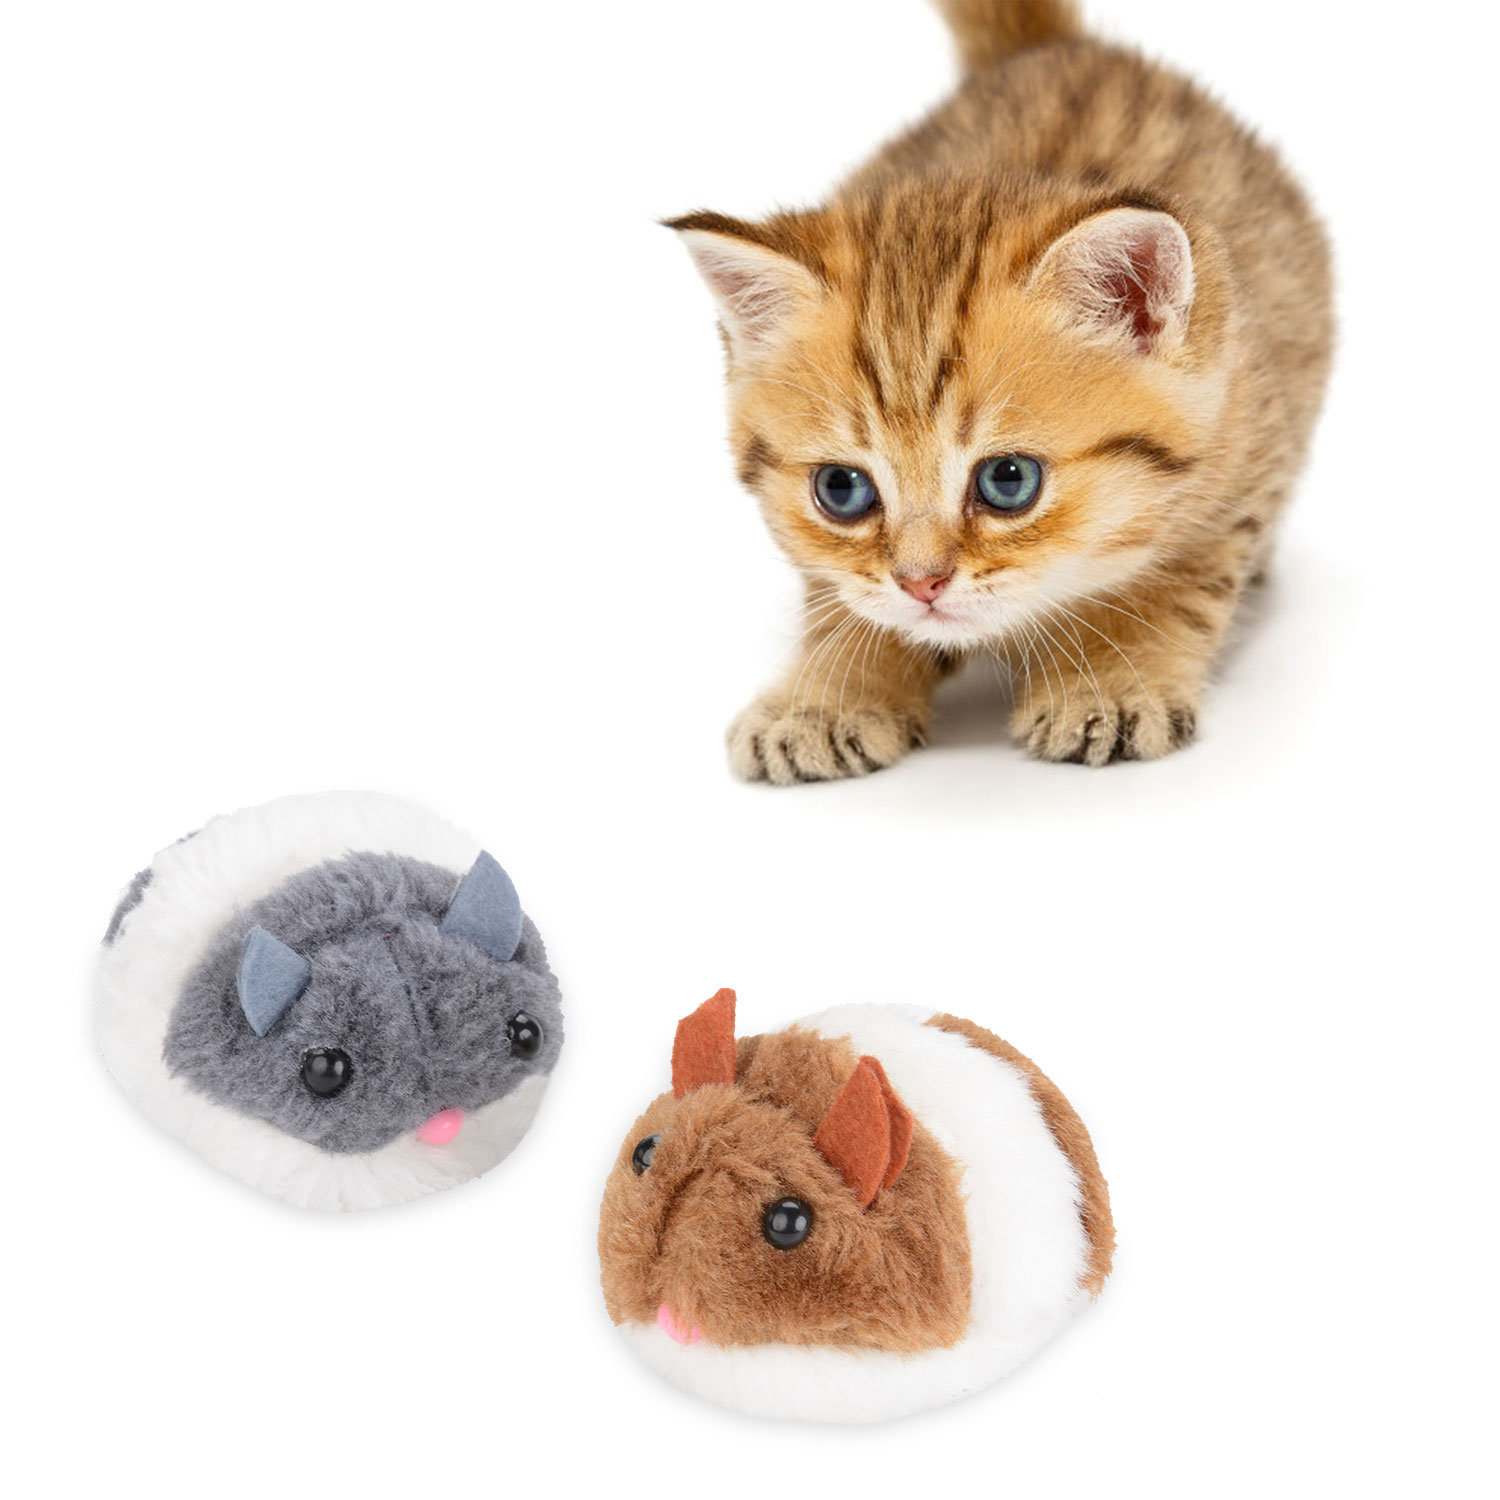 2021 Kapmore Funny Creative Cat Toys Bite-Resistant Mice Shape Vibrating Moving Cat Interactive Toy Cat Chew Toys Pet Supplies